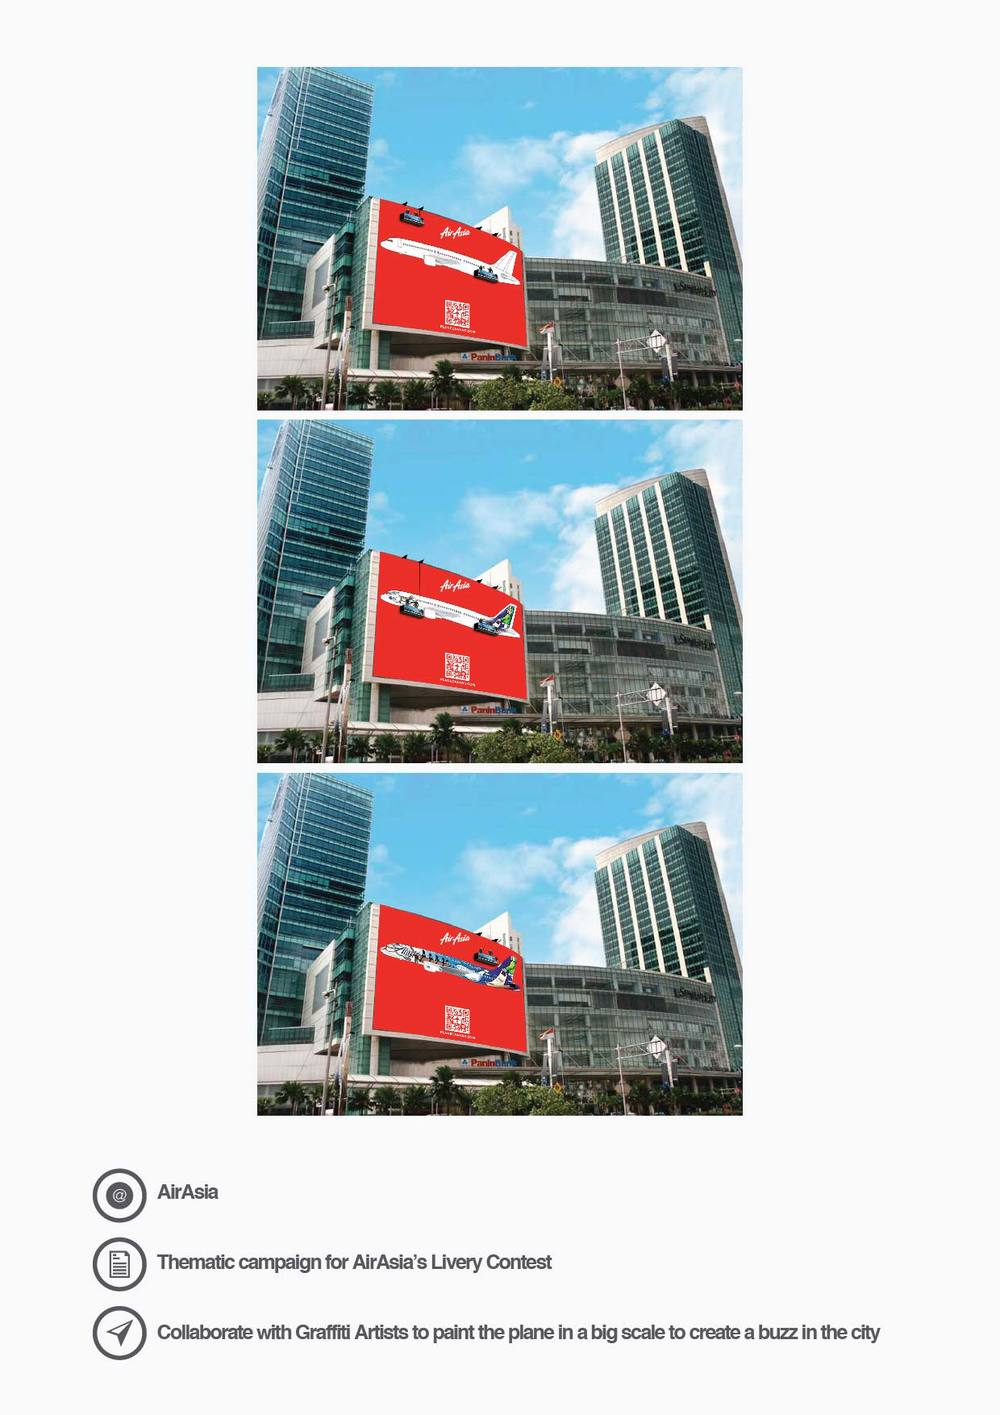 AirAsia Thematic campaign for AirAsia's Livery Contest